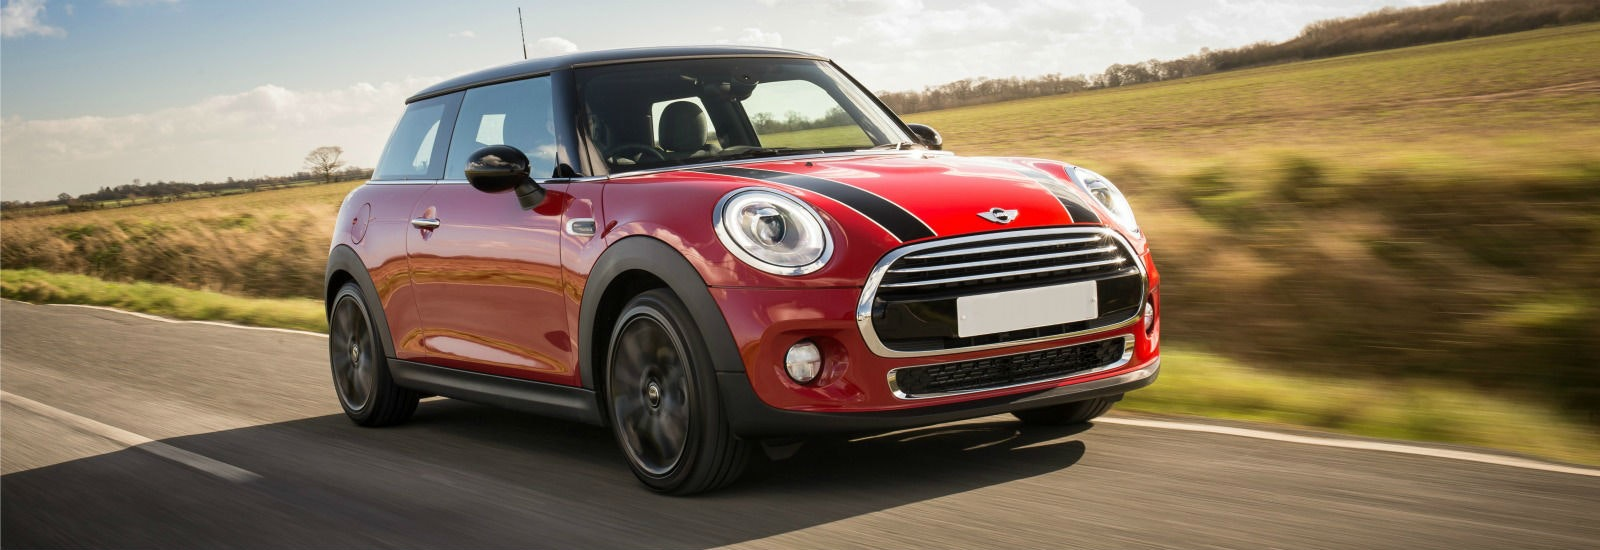 2018 mini hatch red driving front